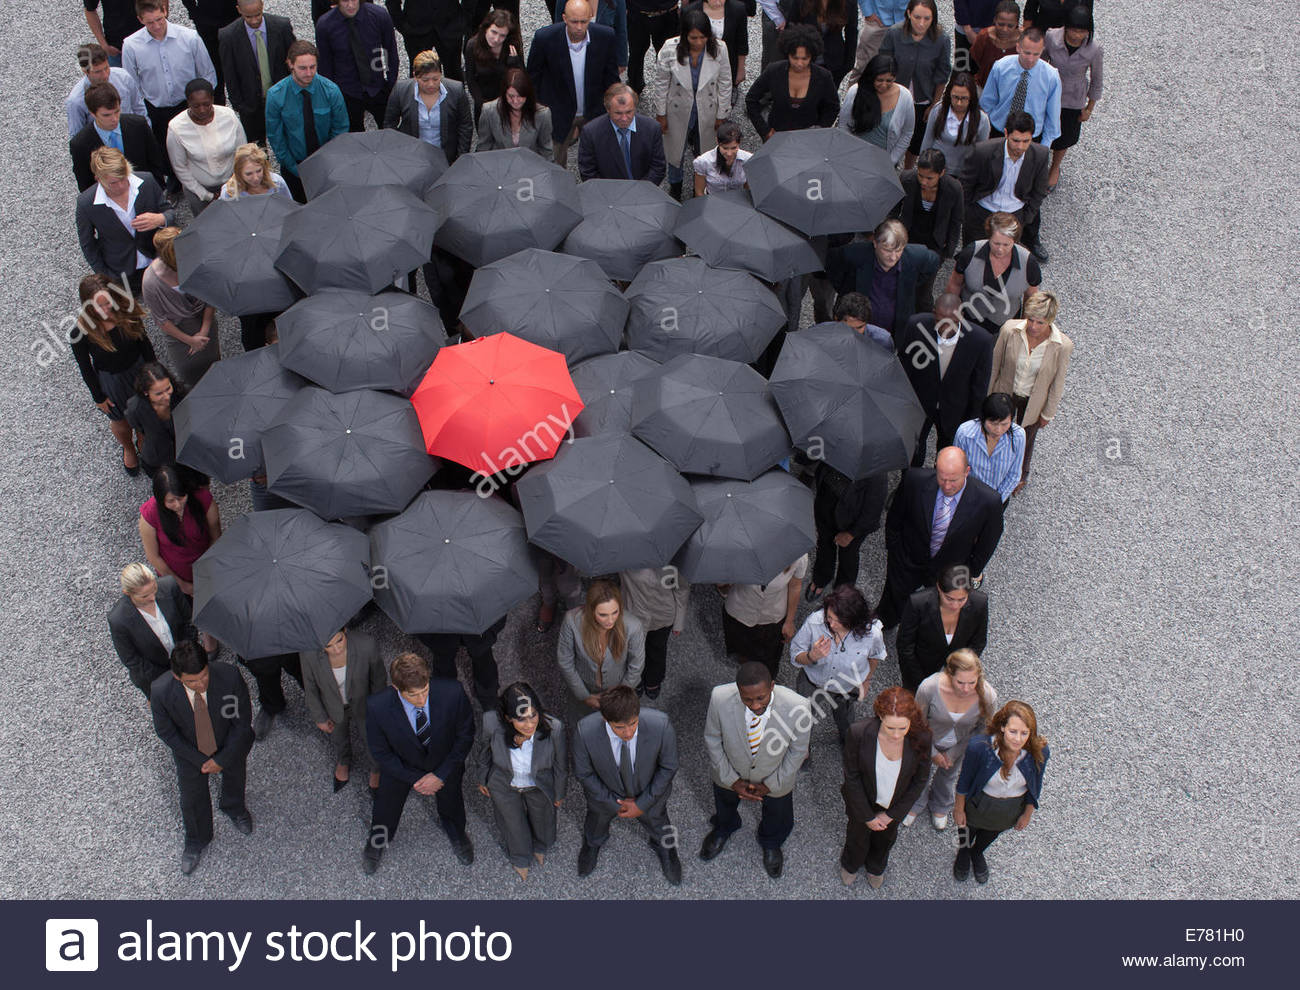 Parapluie à centre du cercle formé par les gens d'affaires Photo Stock